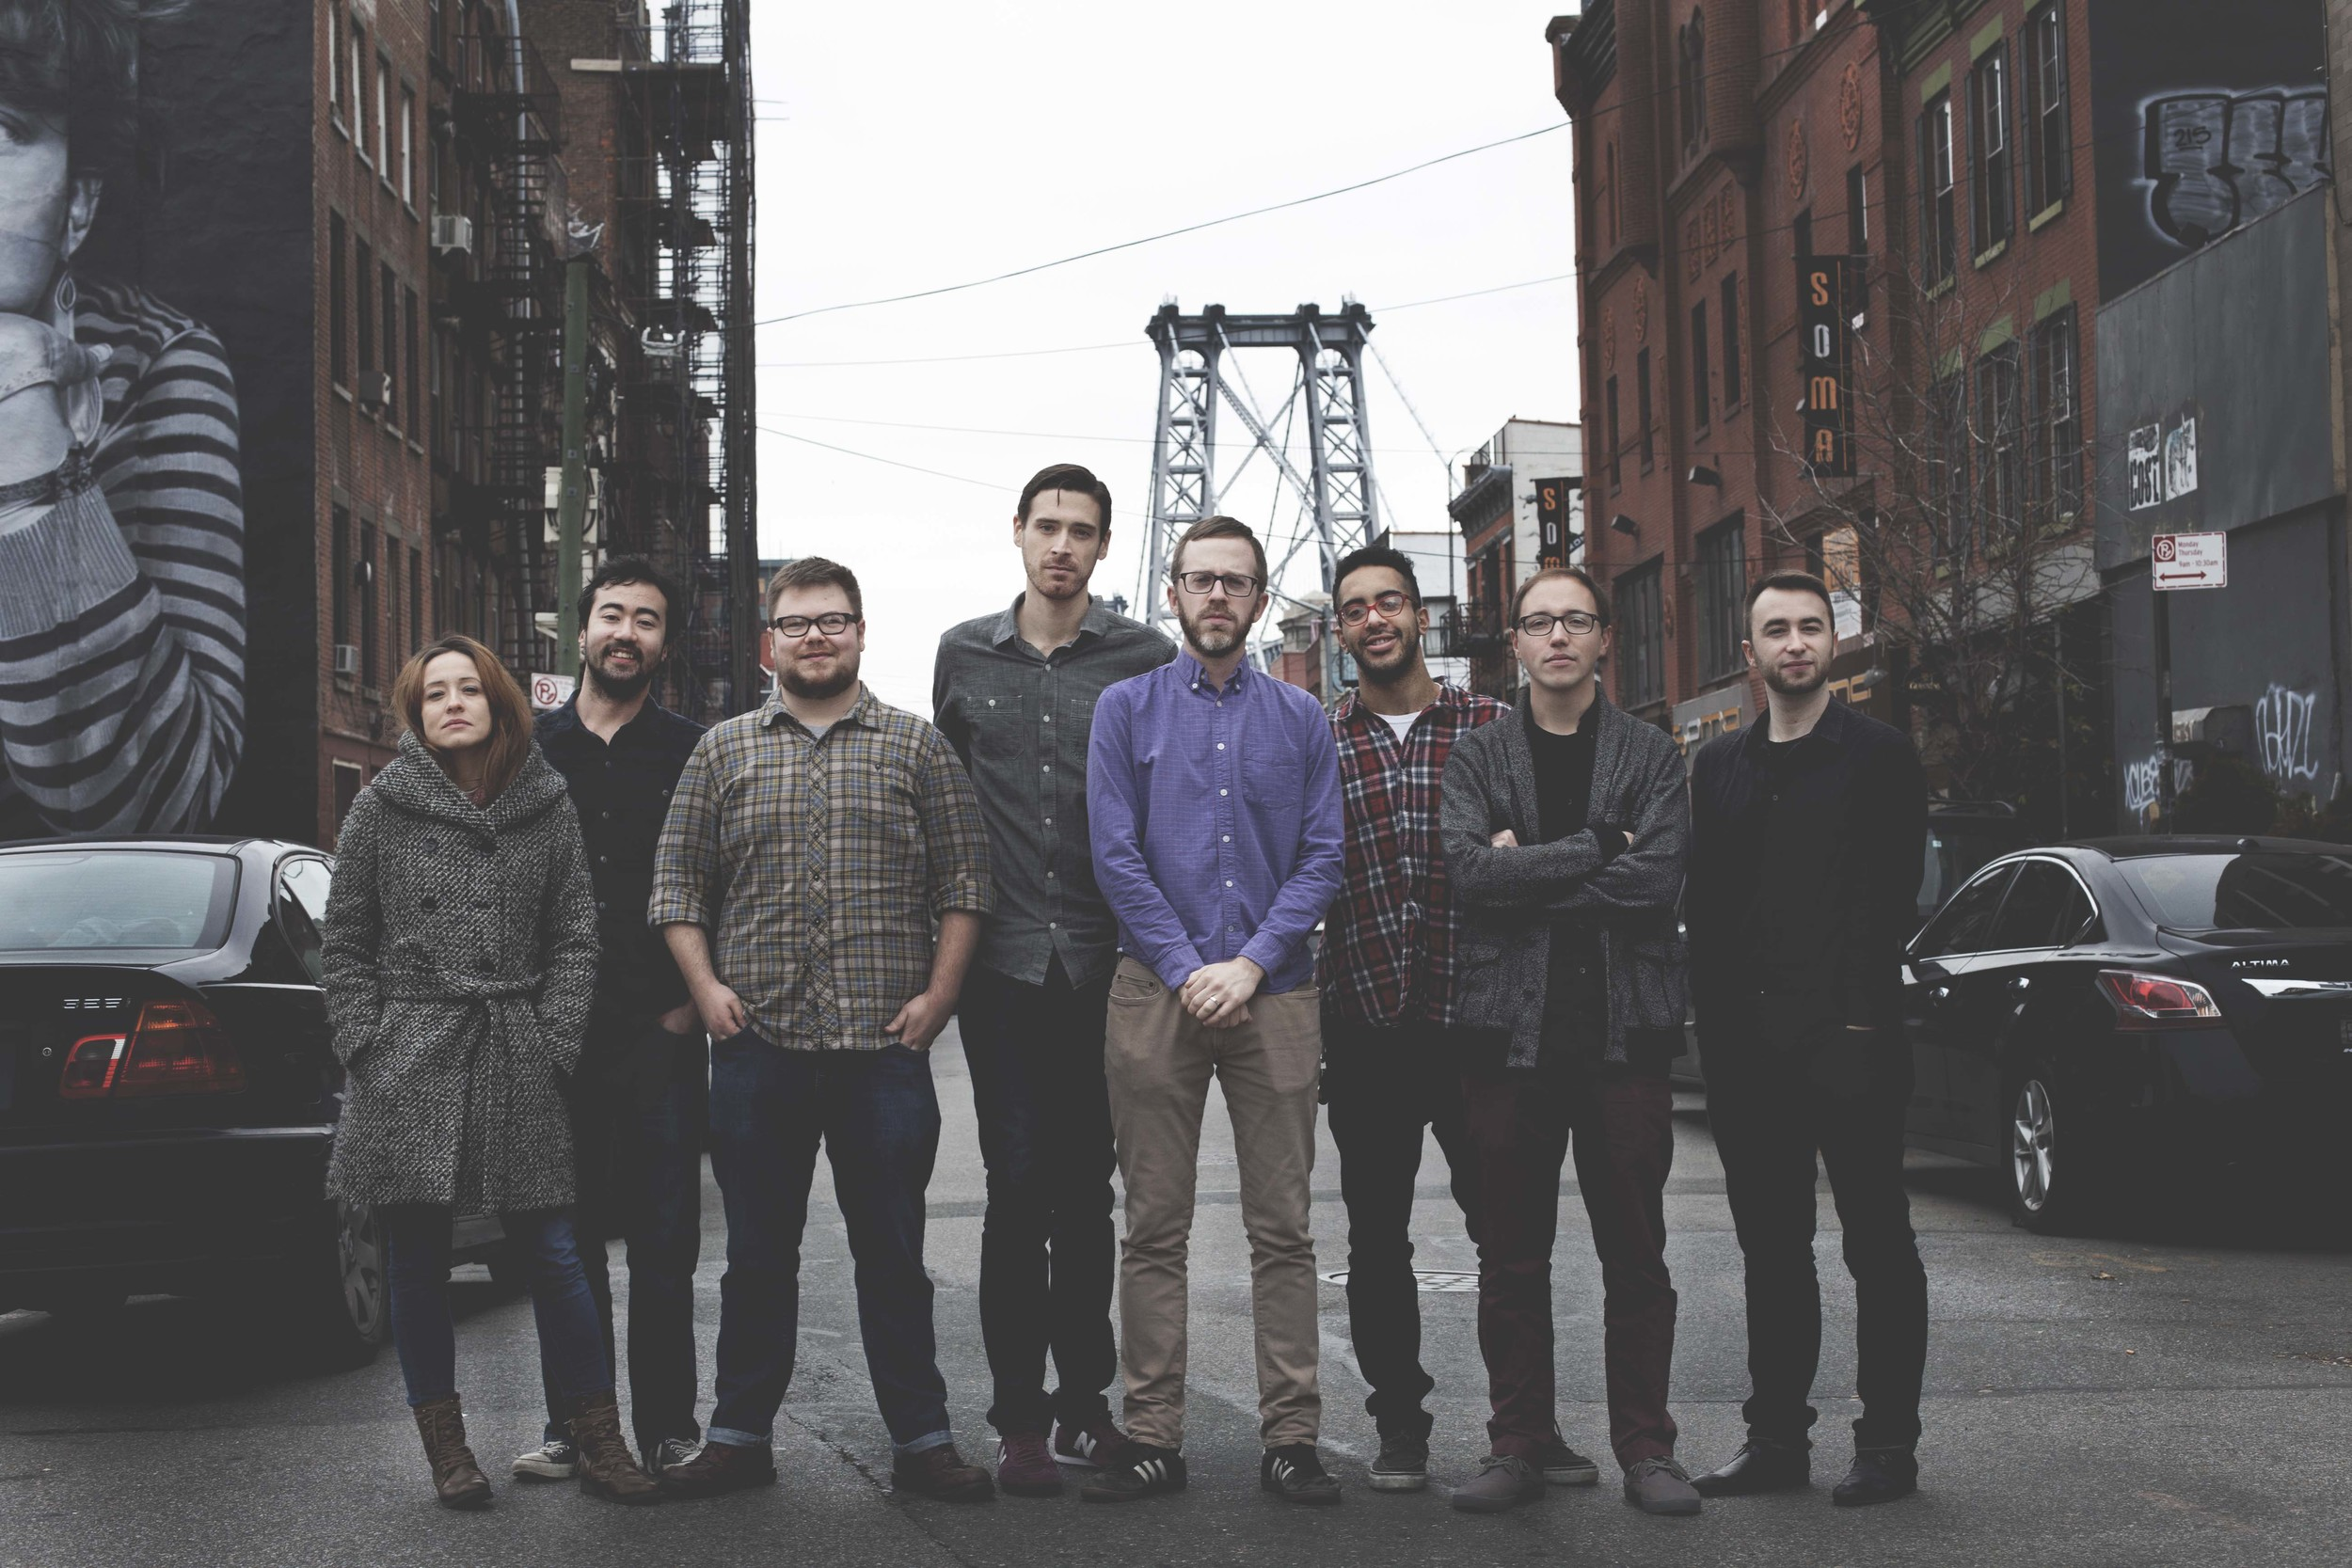 Matterhorn in Brooklyn: (L to R) Marta Sanchez, Marty Kenney, Brad Mulholland, Jeff McLaughlin, Drew Williams, Nathan Ellman-Bell, John Blevins, Nick Grinder. Photo:  Anthony Garito